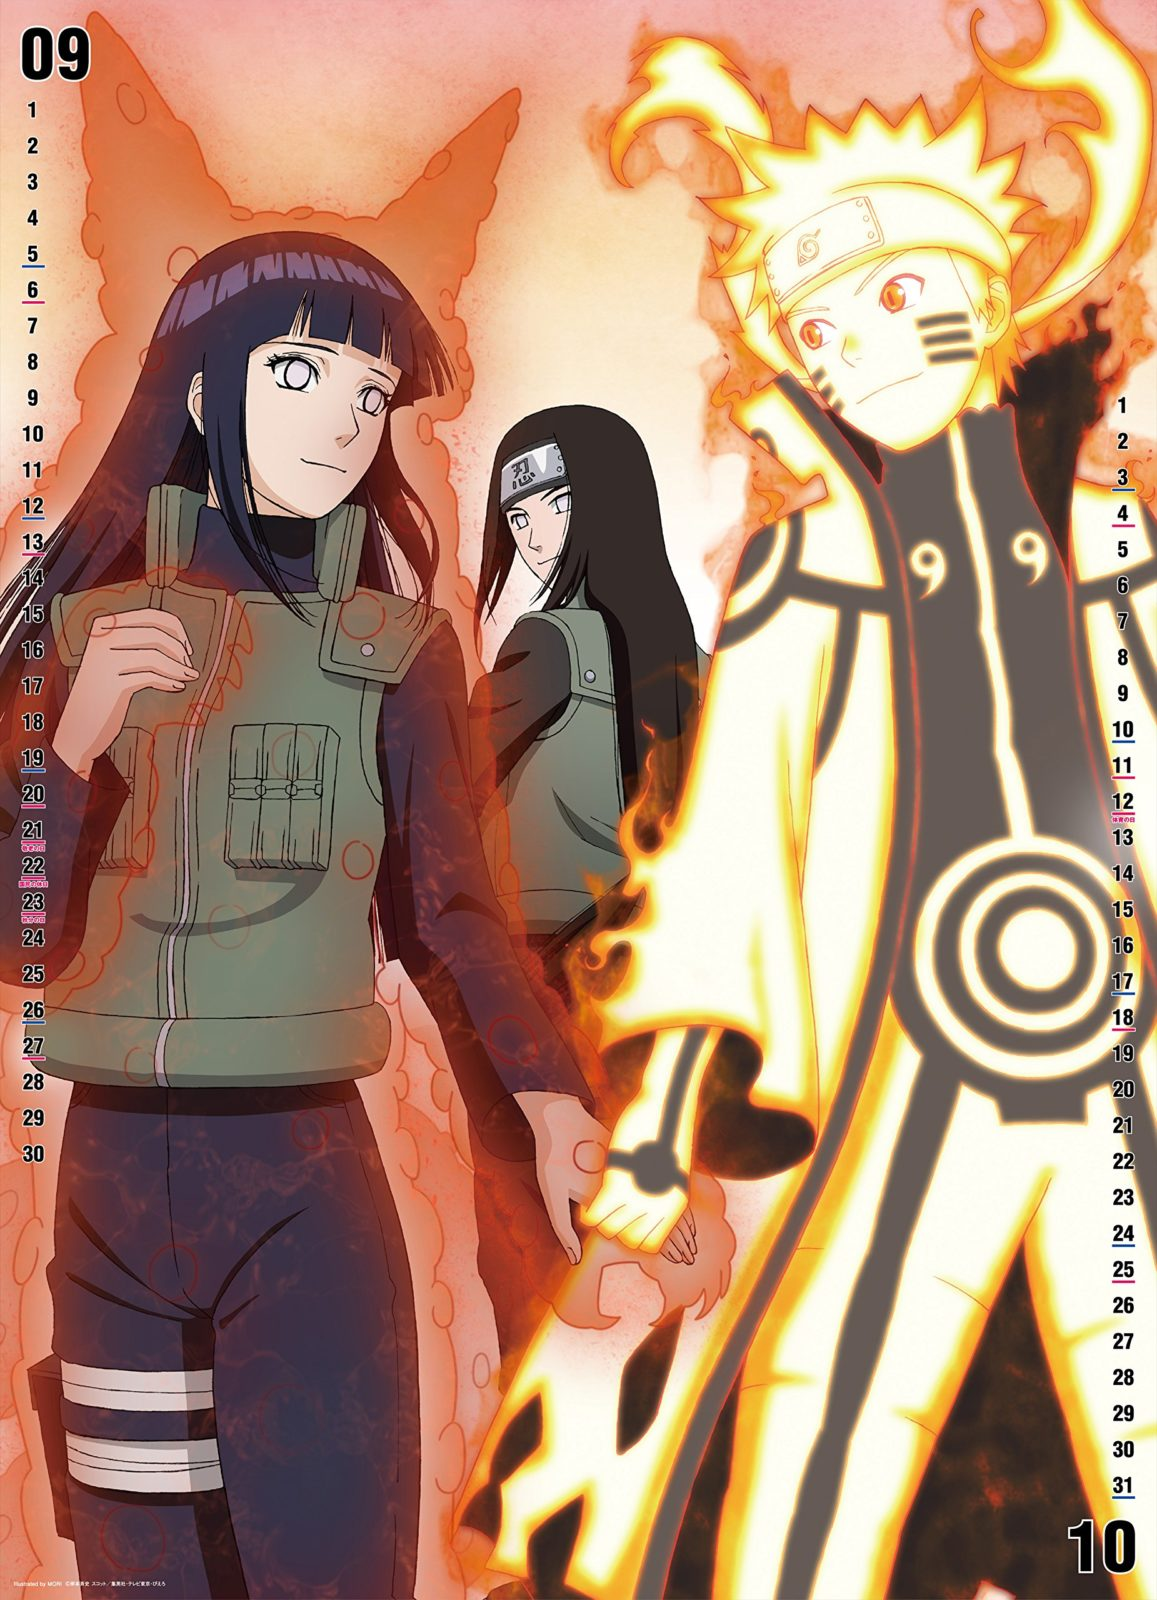 Naruto shippuden calendrier mural 2015 librairie gribouille for Calendrier mural 2015